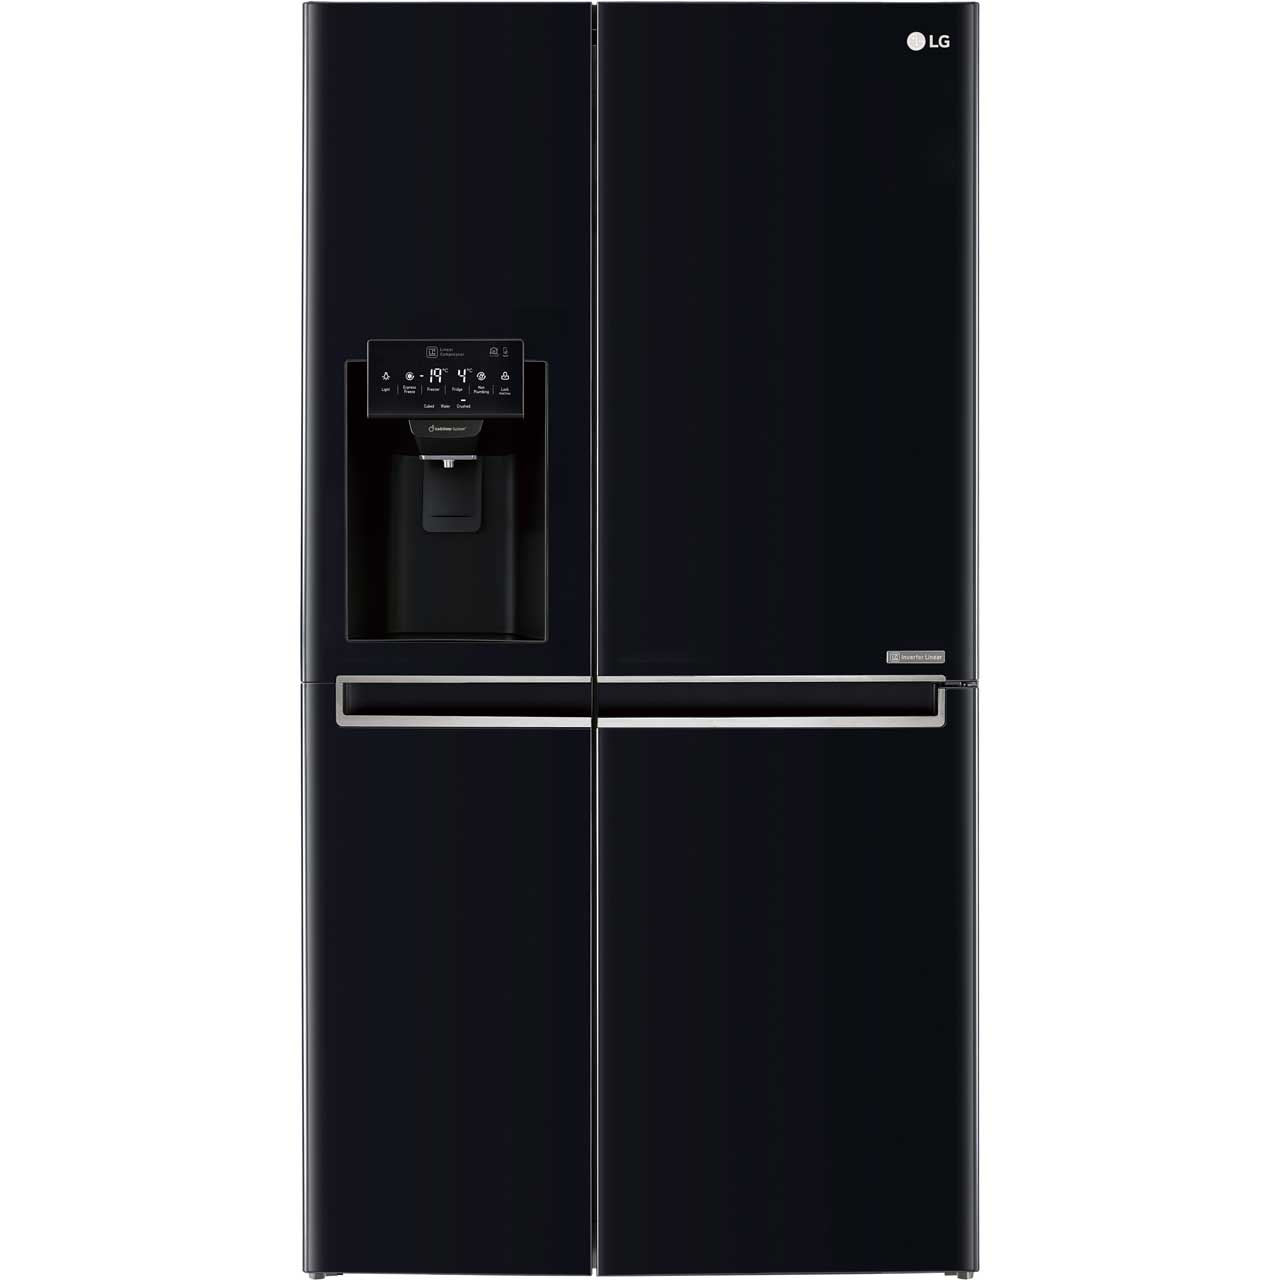 LG GSL761WBXV Free Standing American Fridge Freezer in Black